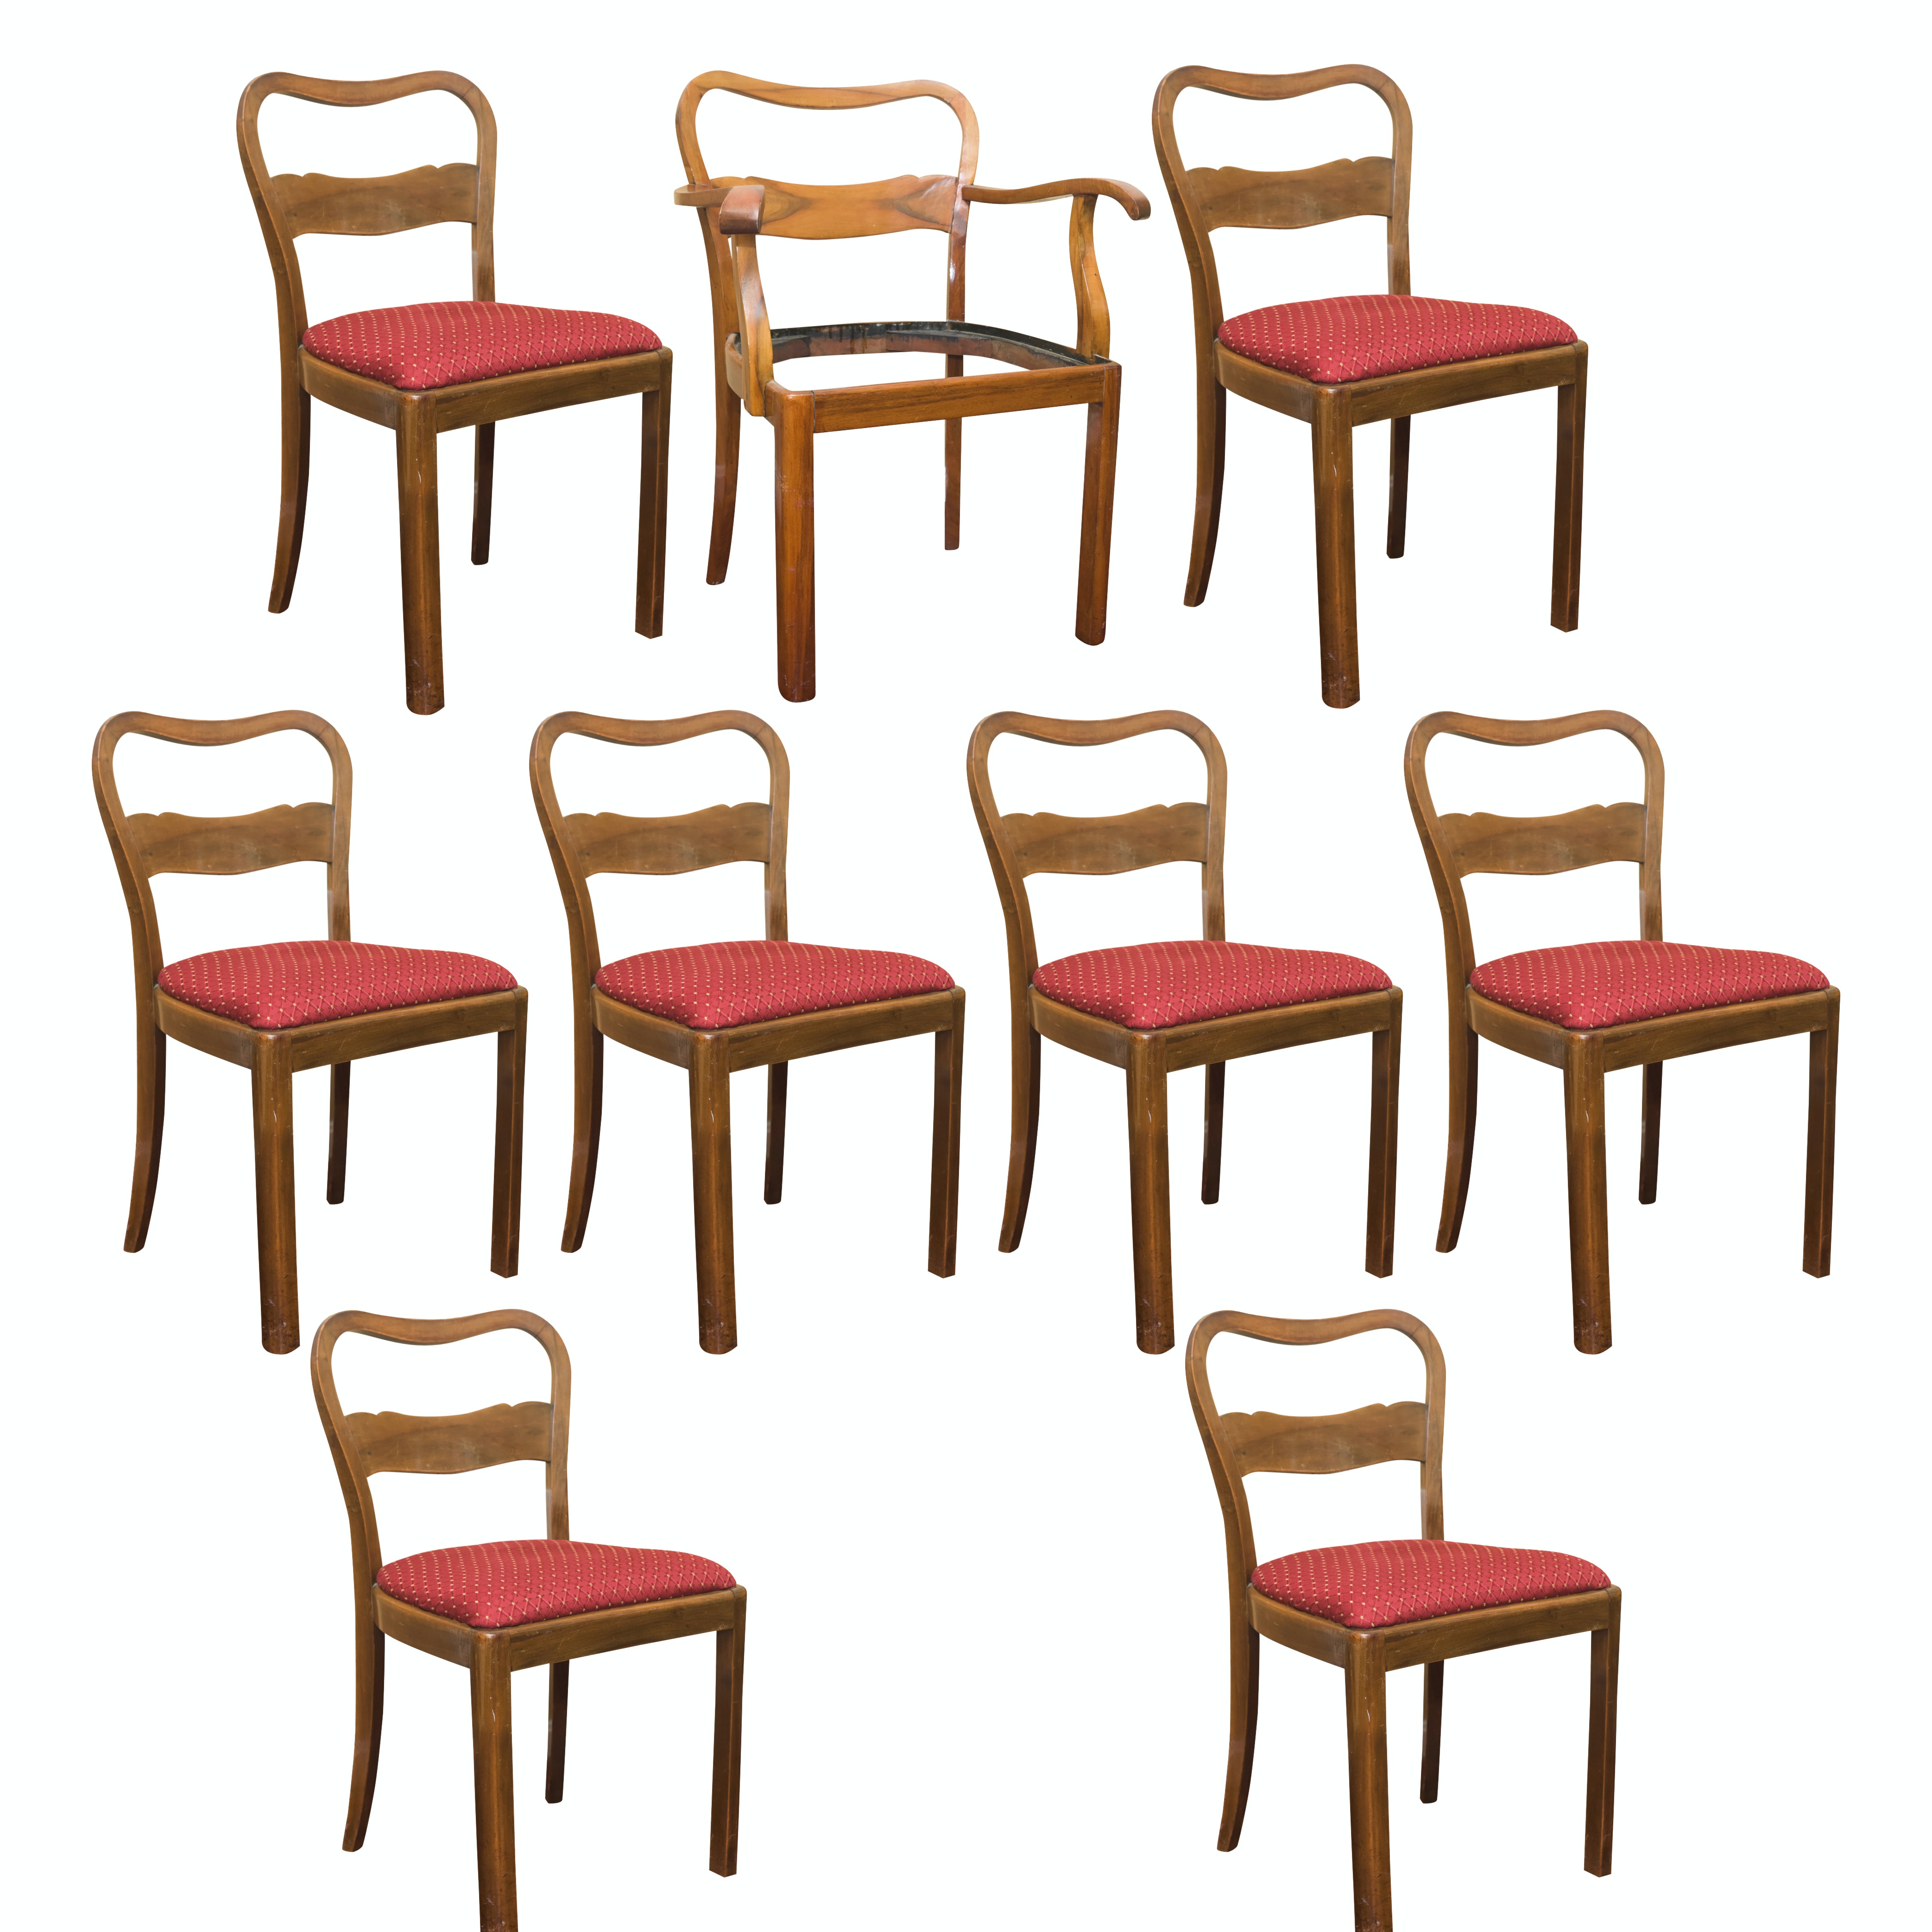 Vintage Wooden Dining Chairs with Upholstered Seats